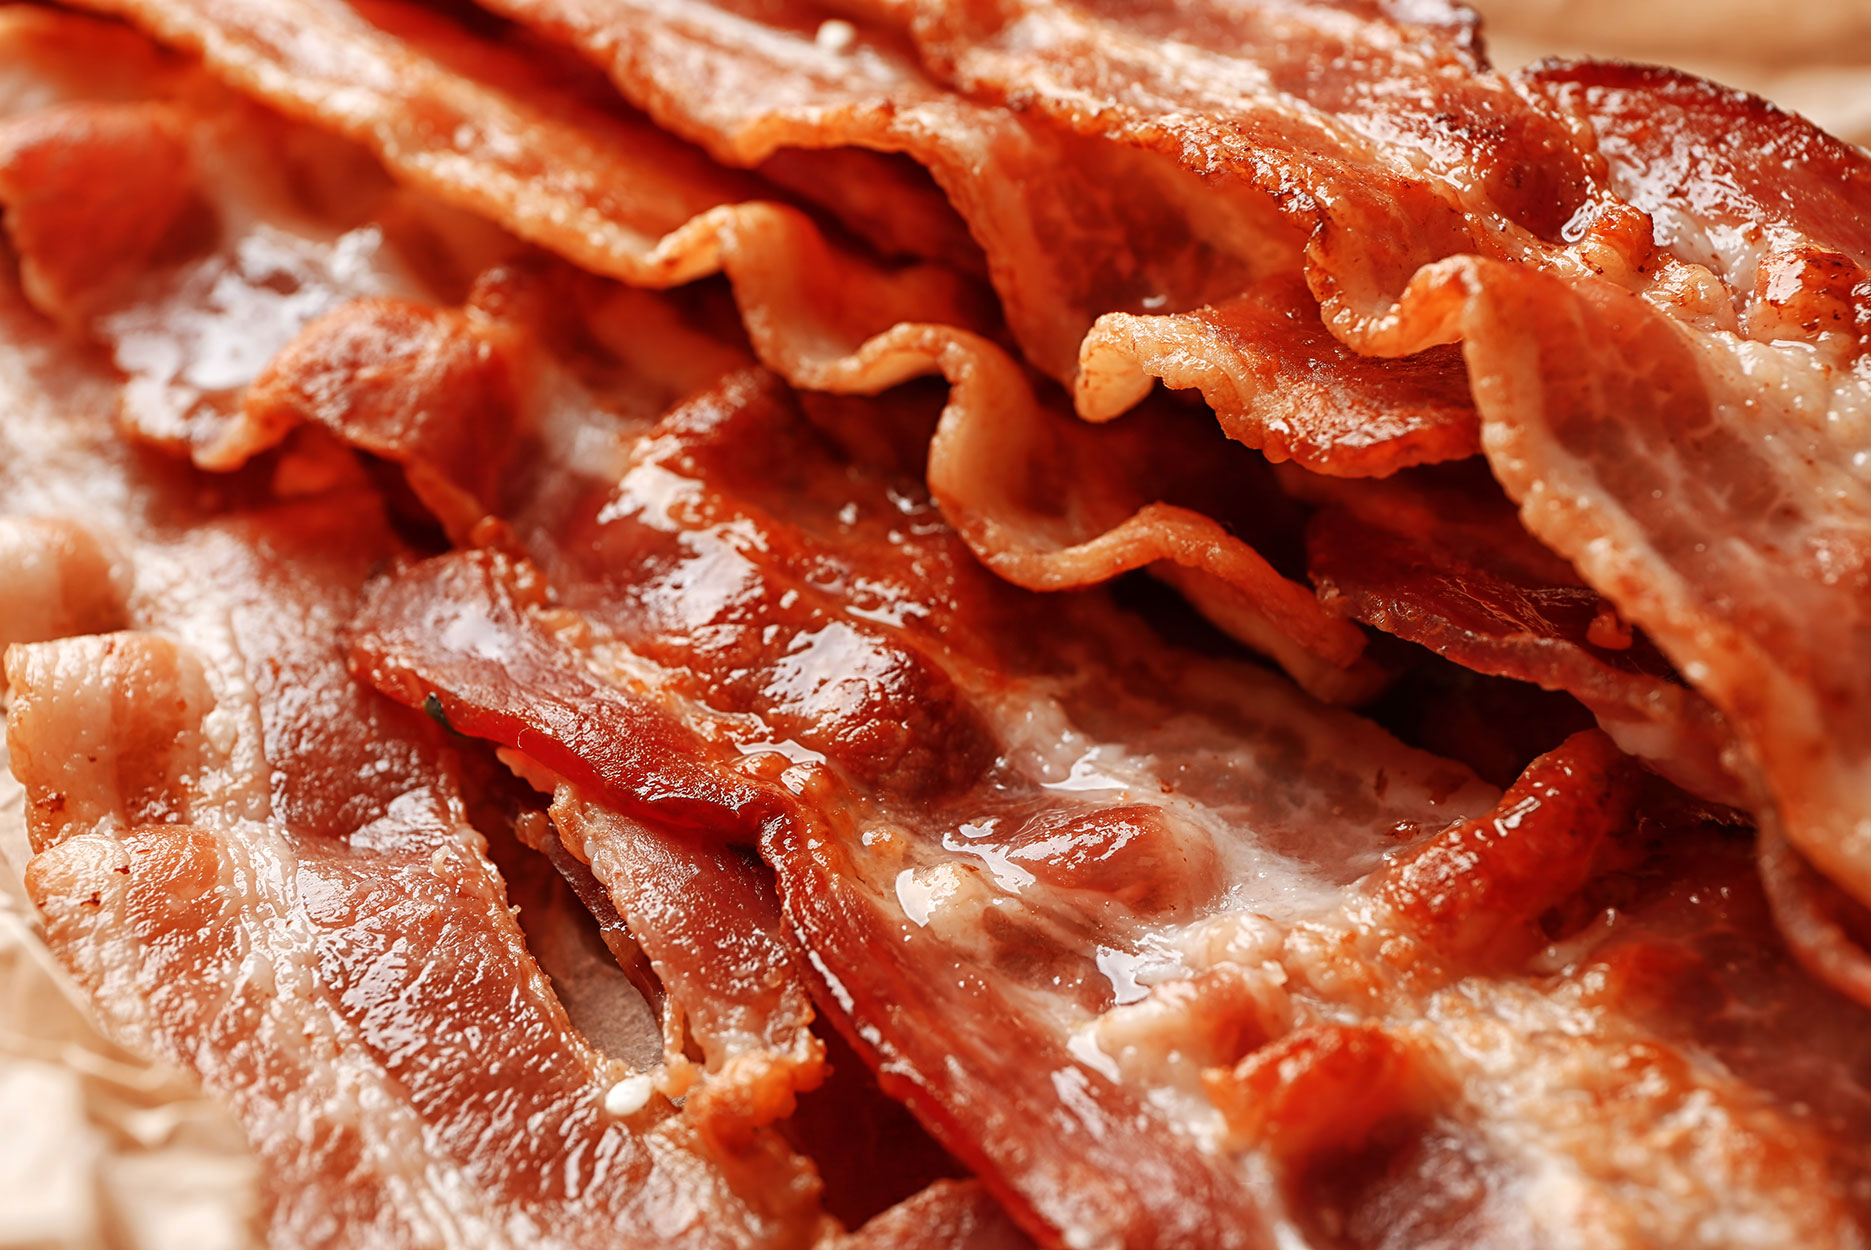 A pile of bacon